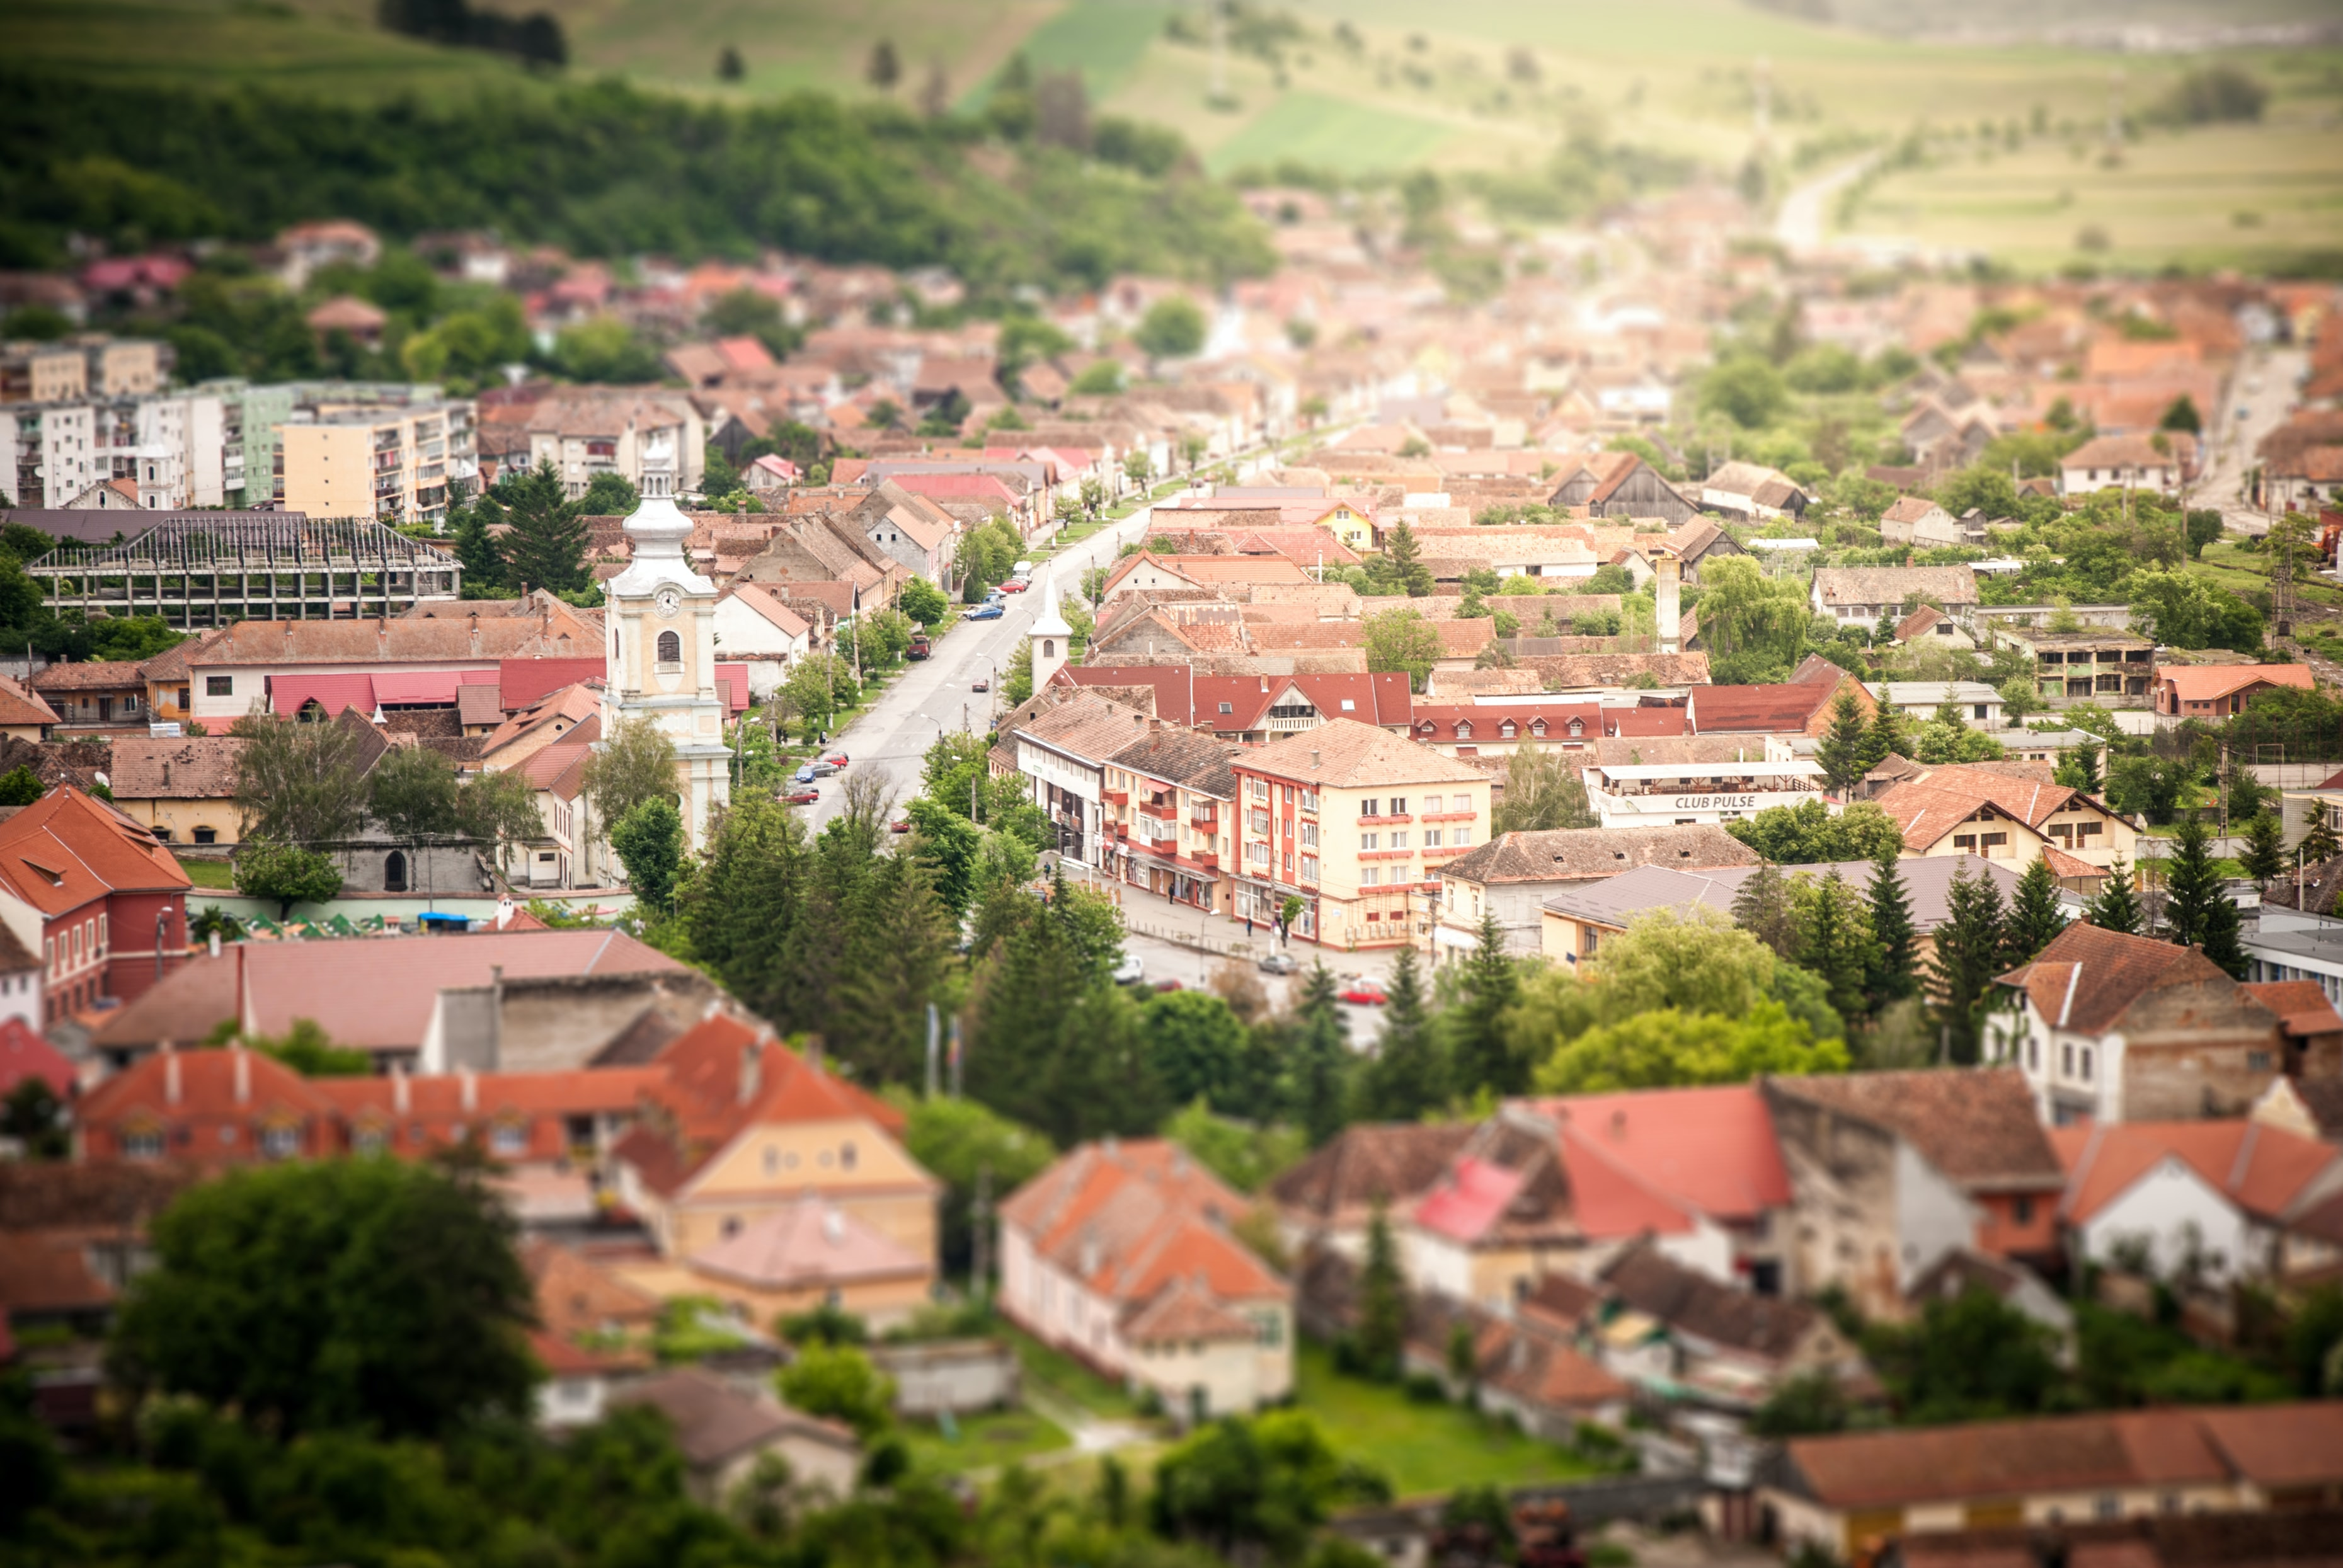 bird's eye view of photography of town